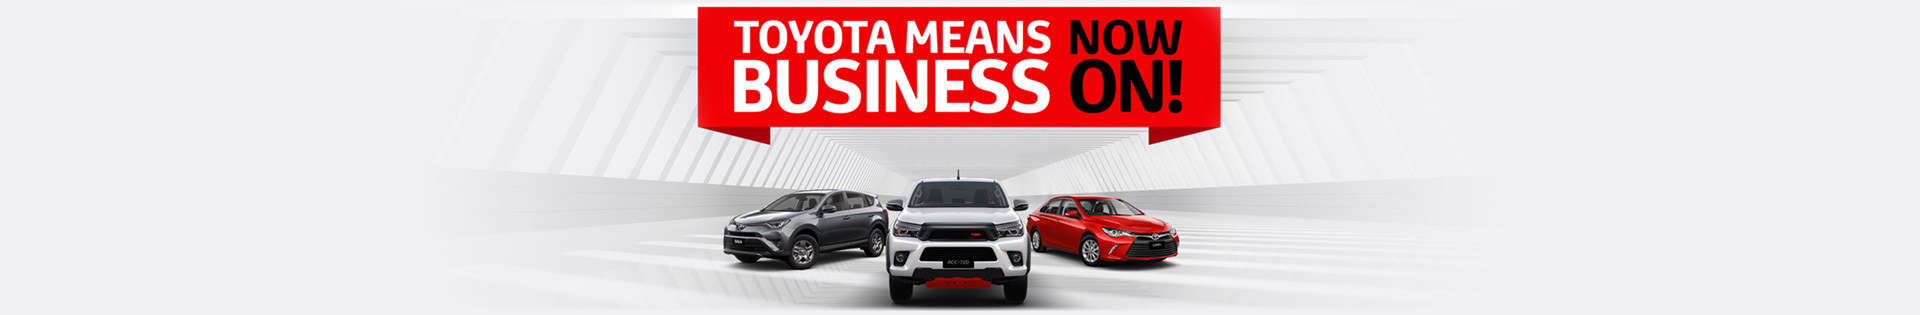 Toyota - National Offer - Toyota Upgrade Advantage - Great Value Across The Yari